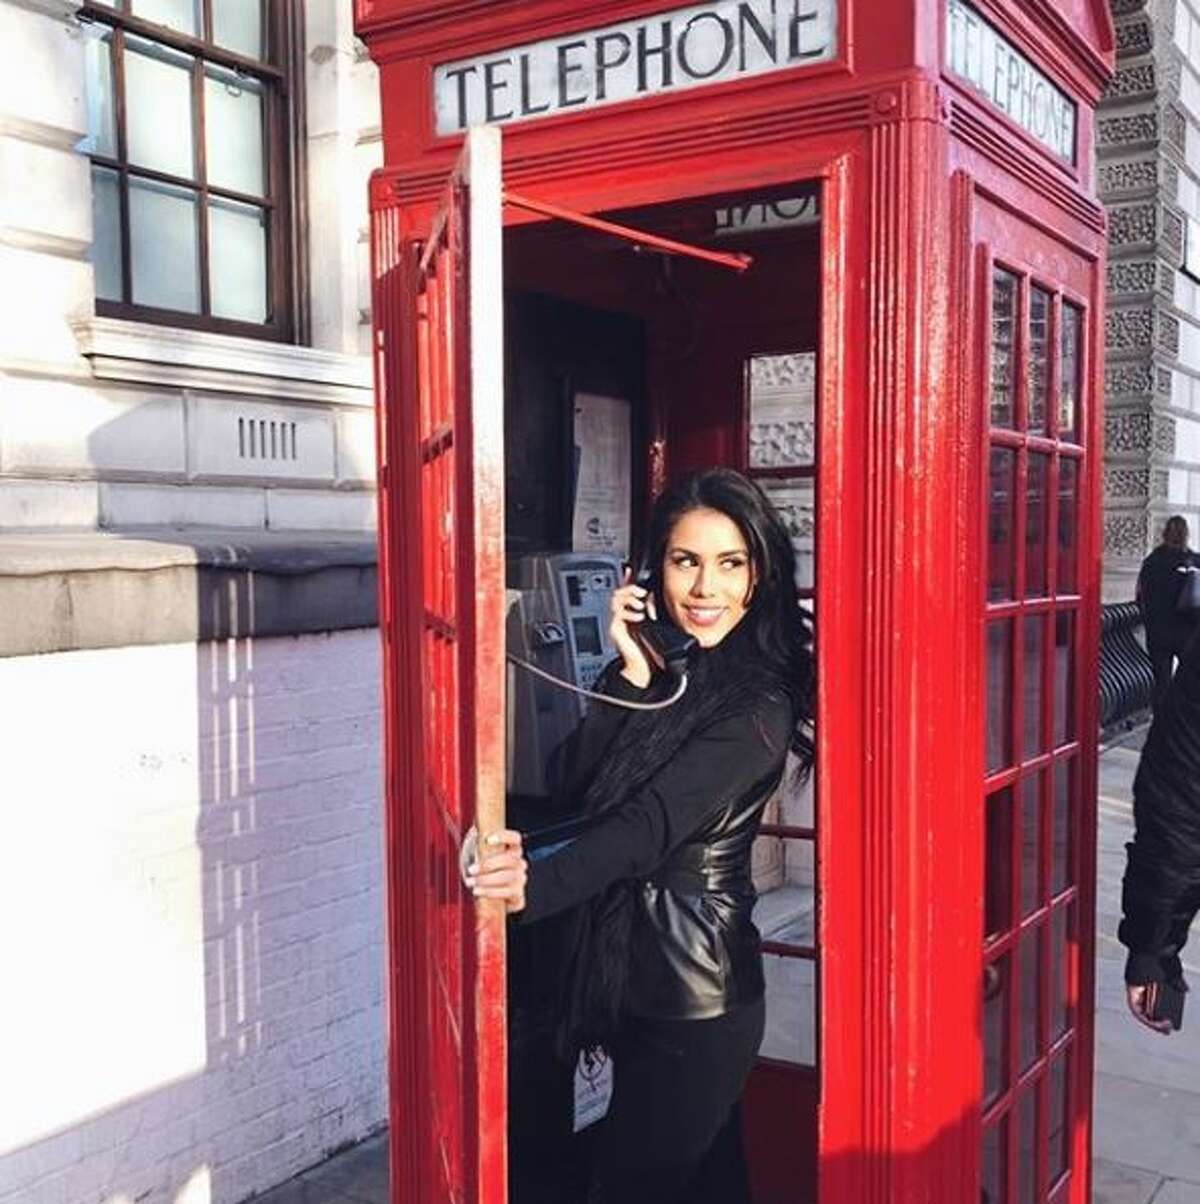 The idea of living in the bustling, vibrant city of London, England has always been a dream for FOX 26's morning traffic anchor, Chrisdyann Uribe. Now she's ready to realize that dream. Uribe will say goodbye to FOX 26 in July and head 'across the pond' to start a new life in London.